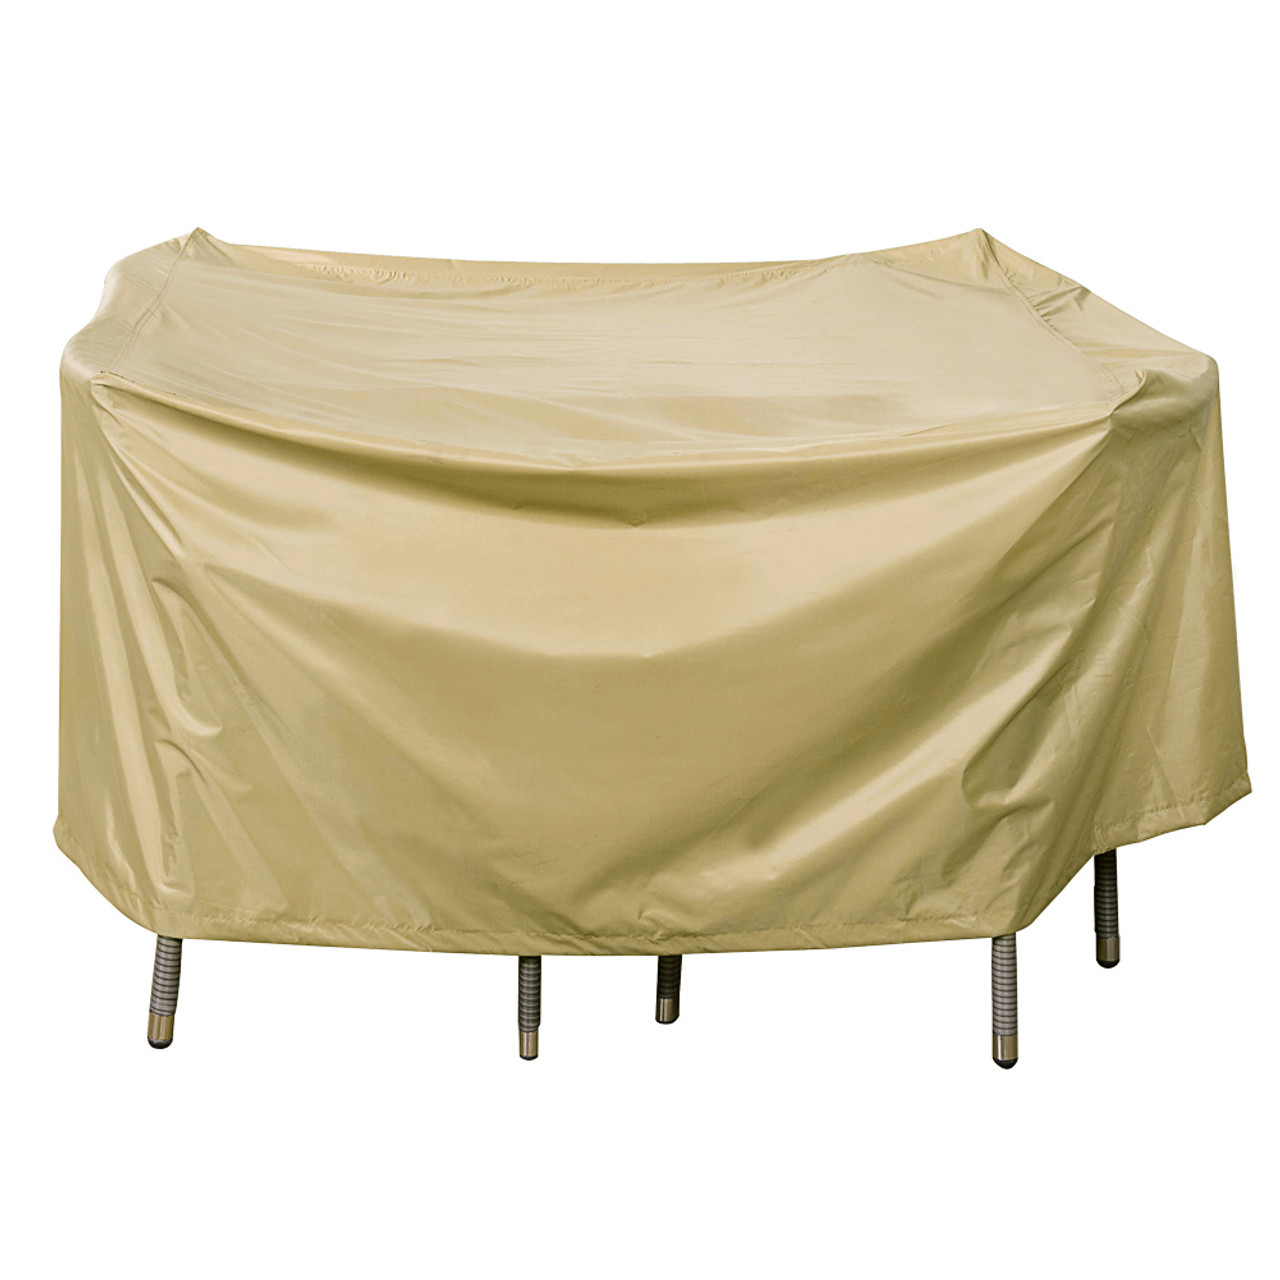 Heavy Duty Square Table Cover With PVC Coating, Fit Up To 46L X 46W X 28H  ...